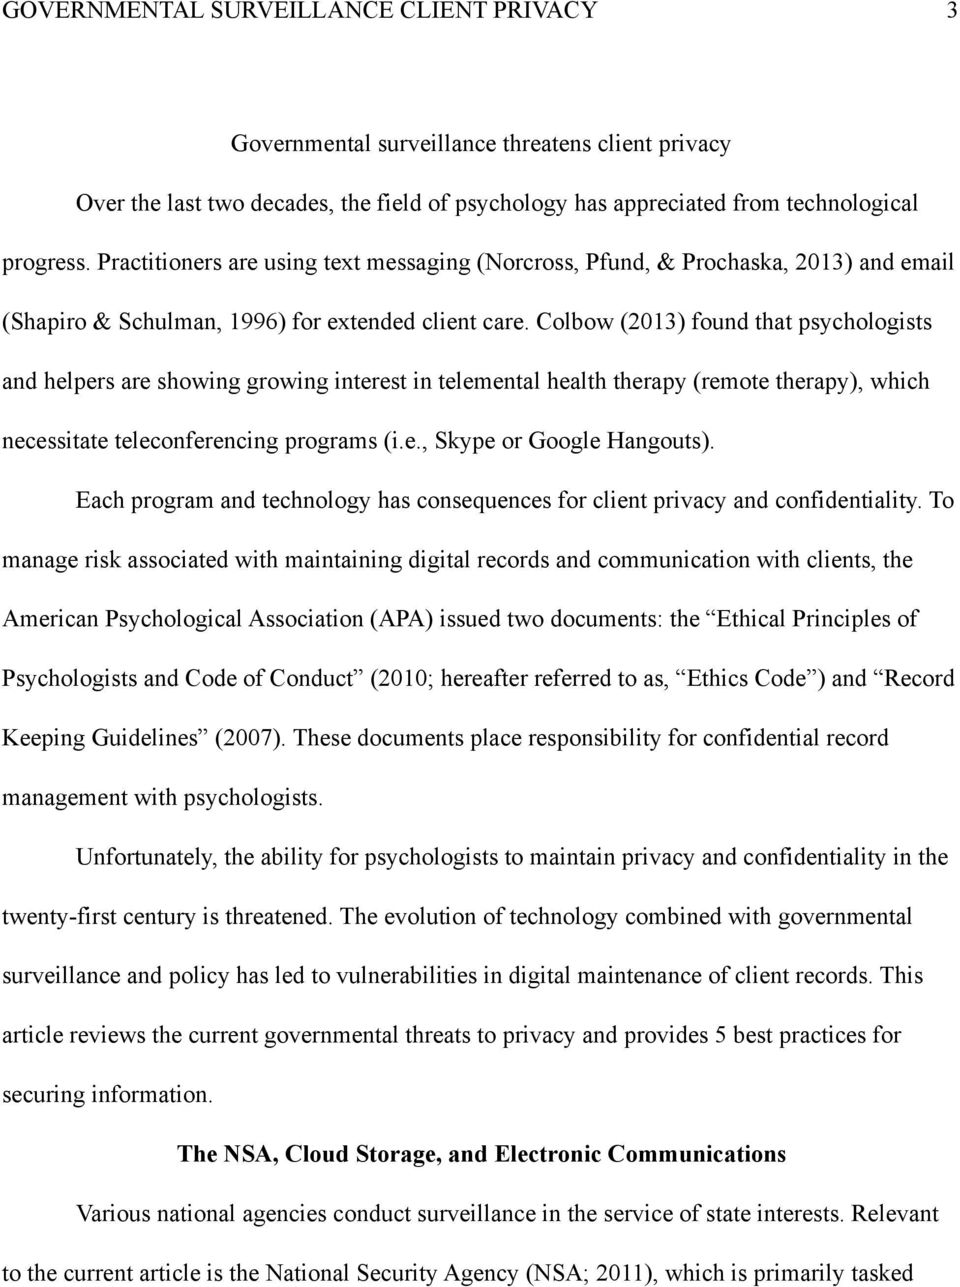 Colbow (2013) found that psychologists and helpers are showing growing interest in telemental health therapy (remote therapy), which necessitate teleconferencing programs (i.e., Skype or Google Hangouts).